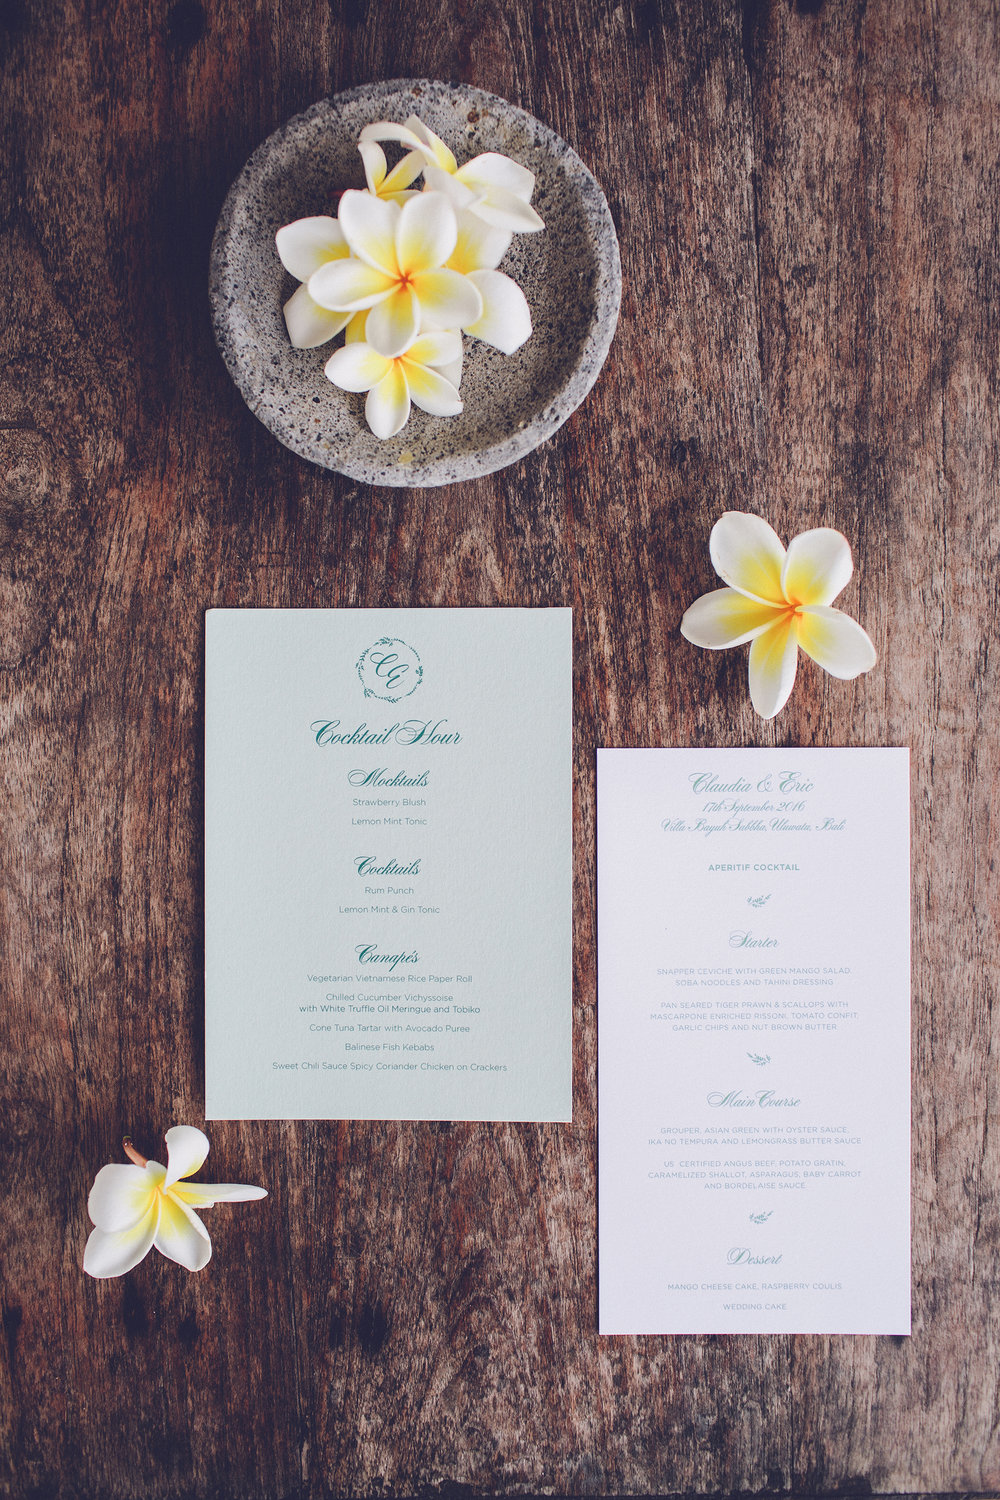 Wedding cocktail and dinner menus | www.chavelli.com